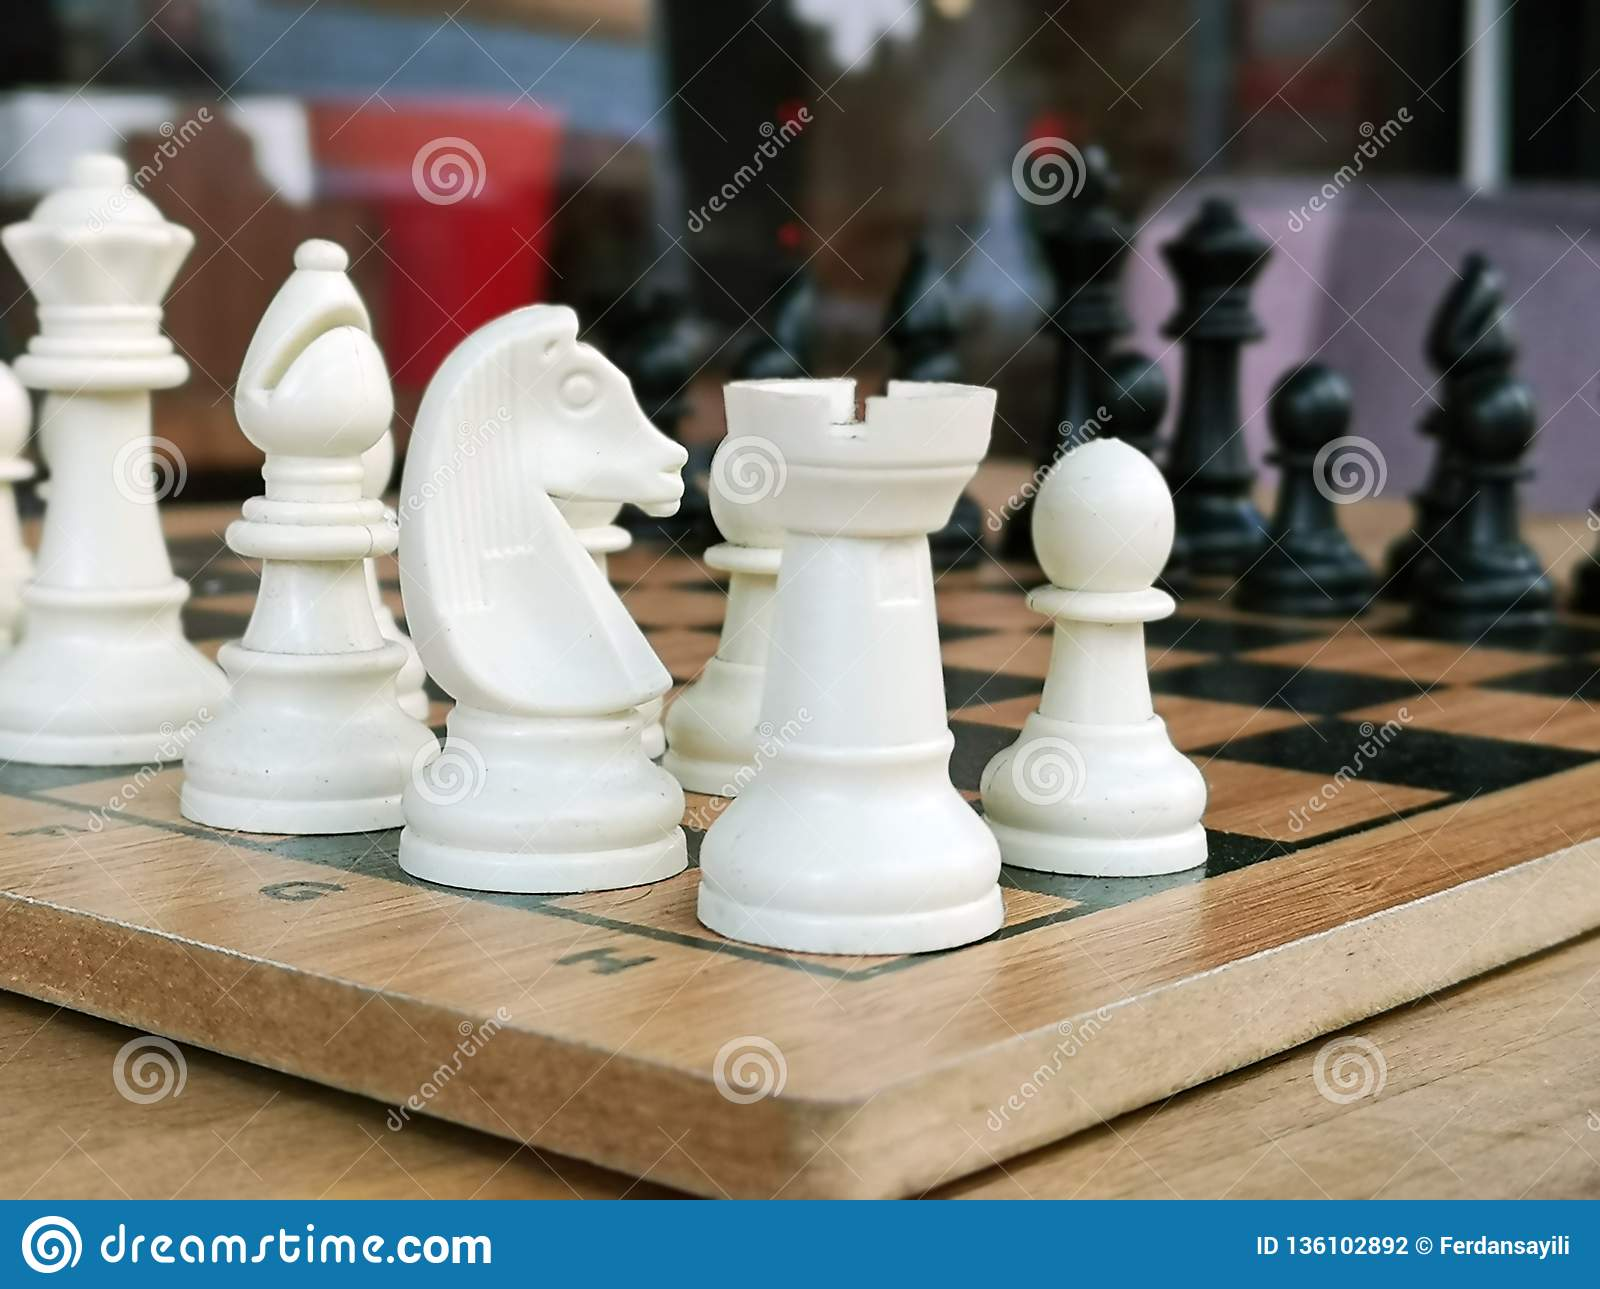 Chess is a popular ancient Board logic antagonistic game with special black and white pieces, on a cell Board for two intelligent